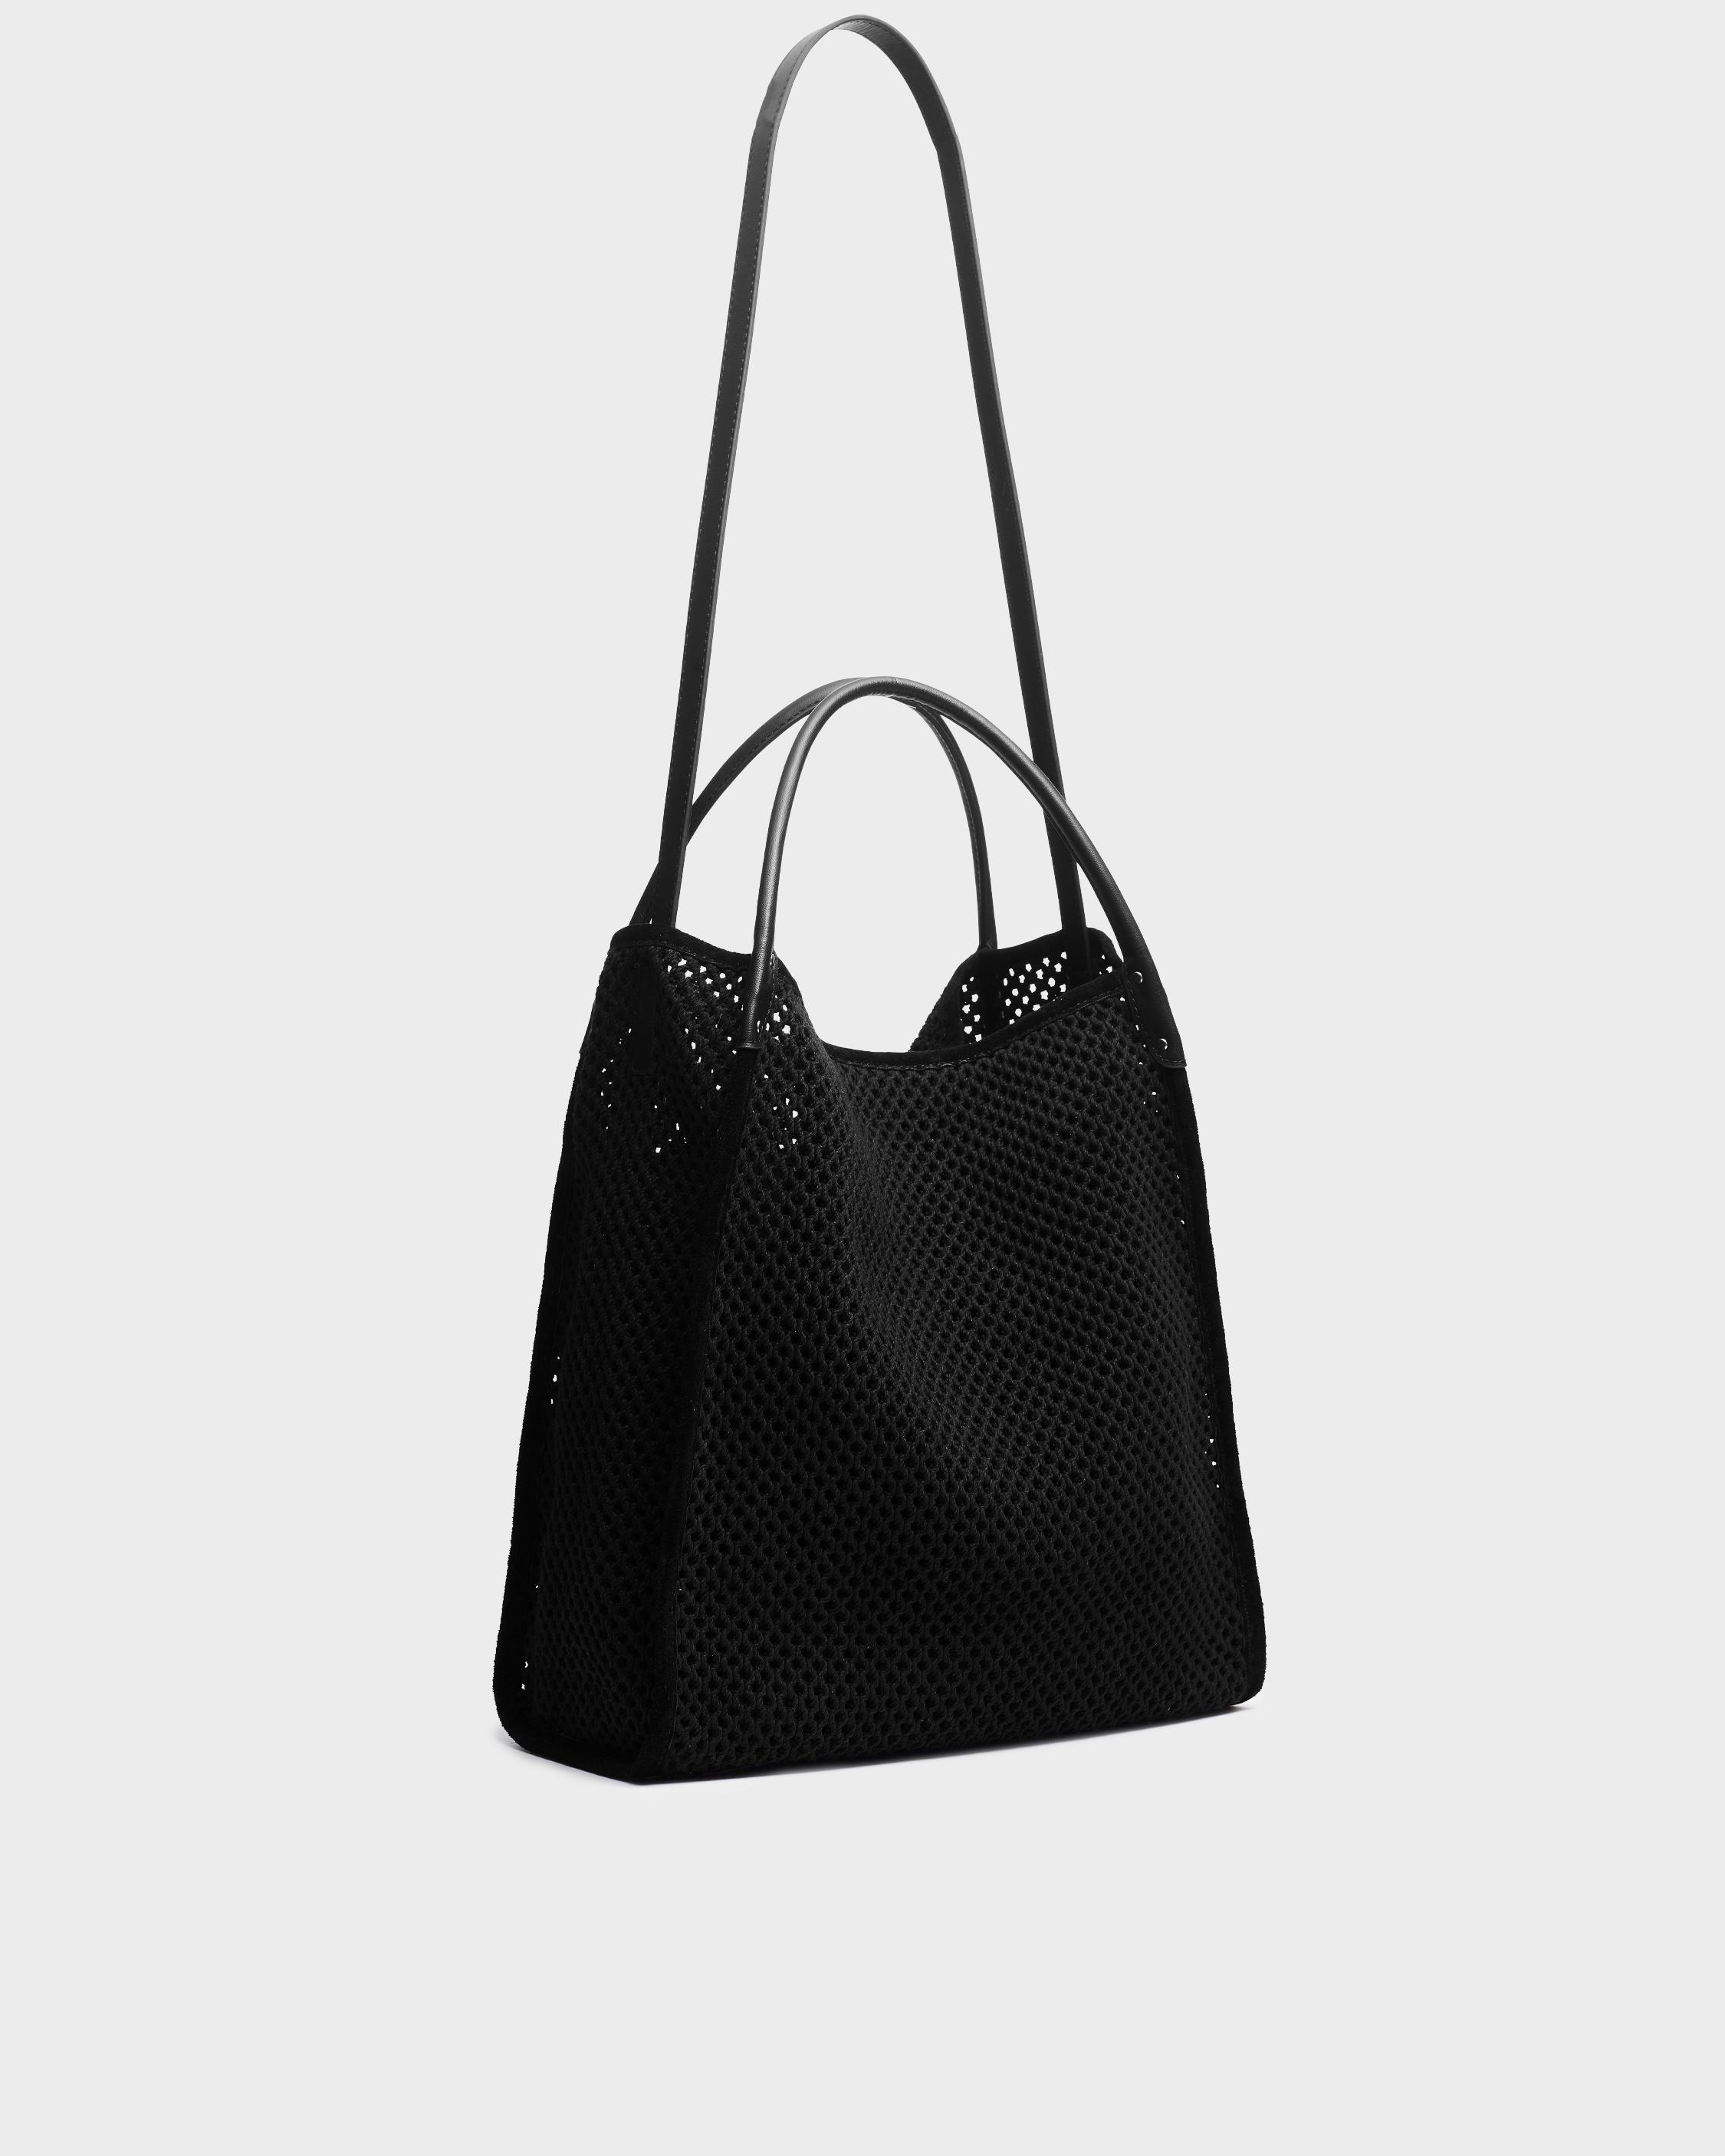 Summer passenger tote - leather and recycled materials 1